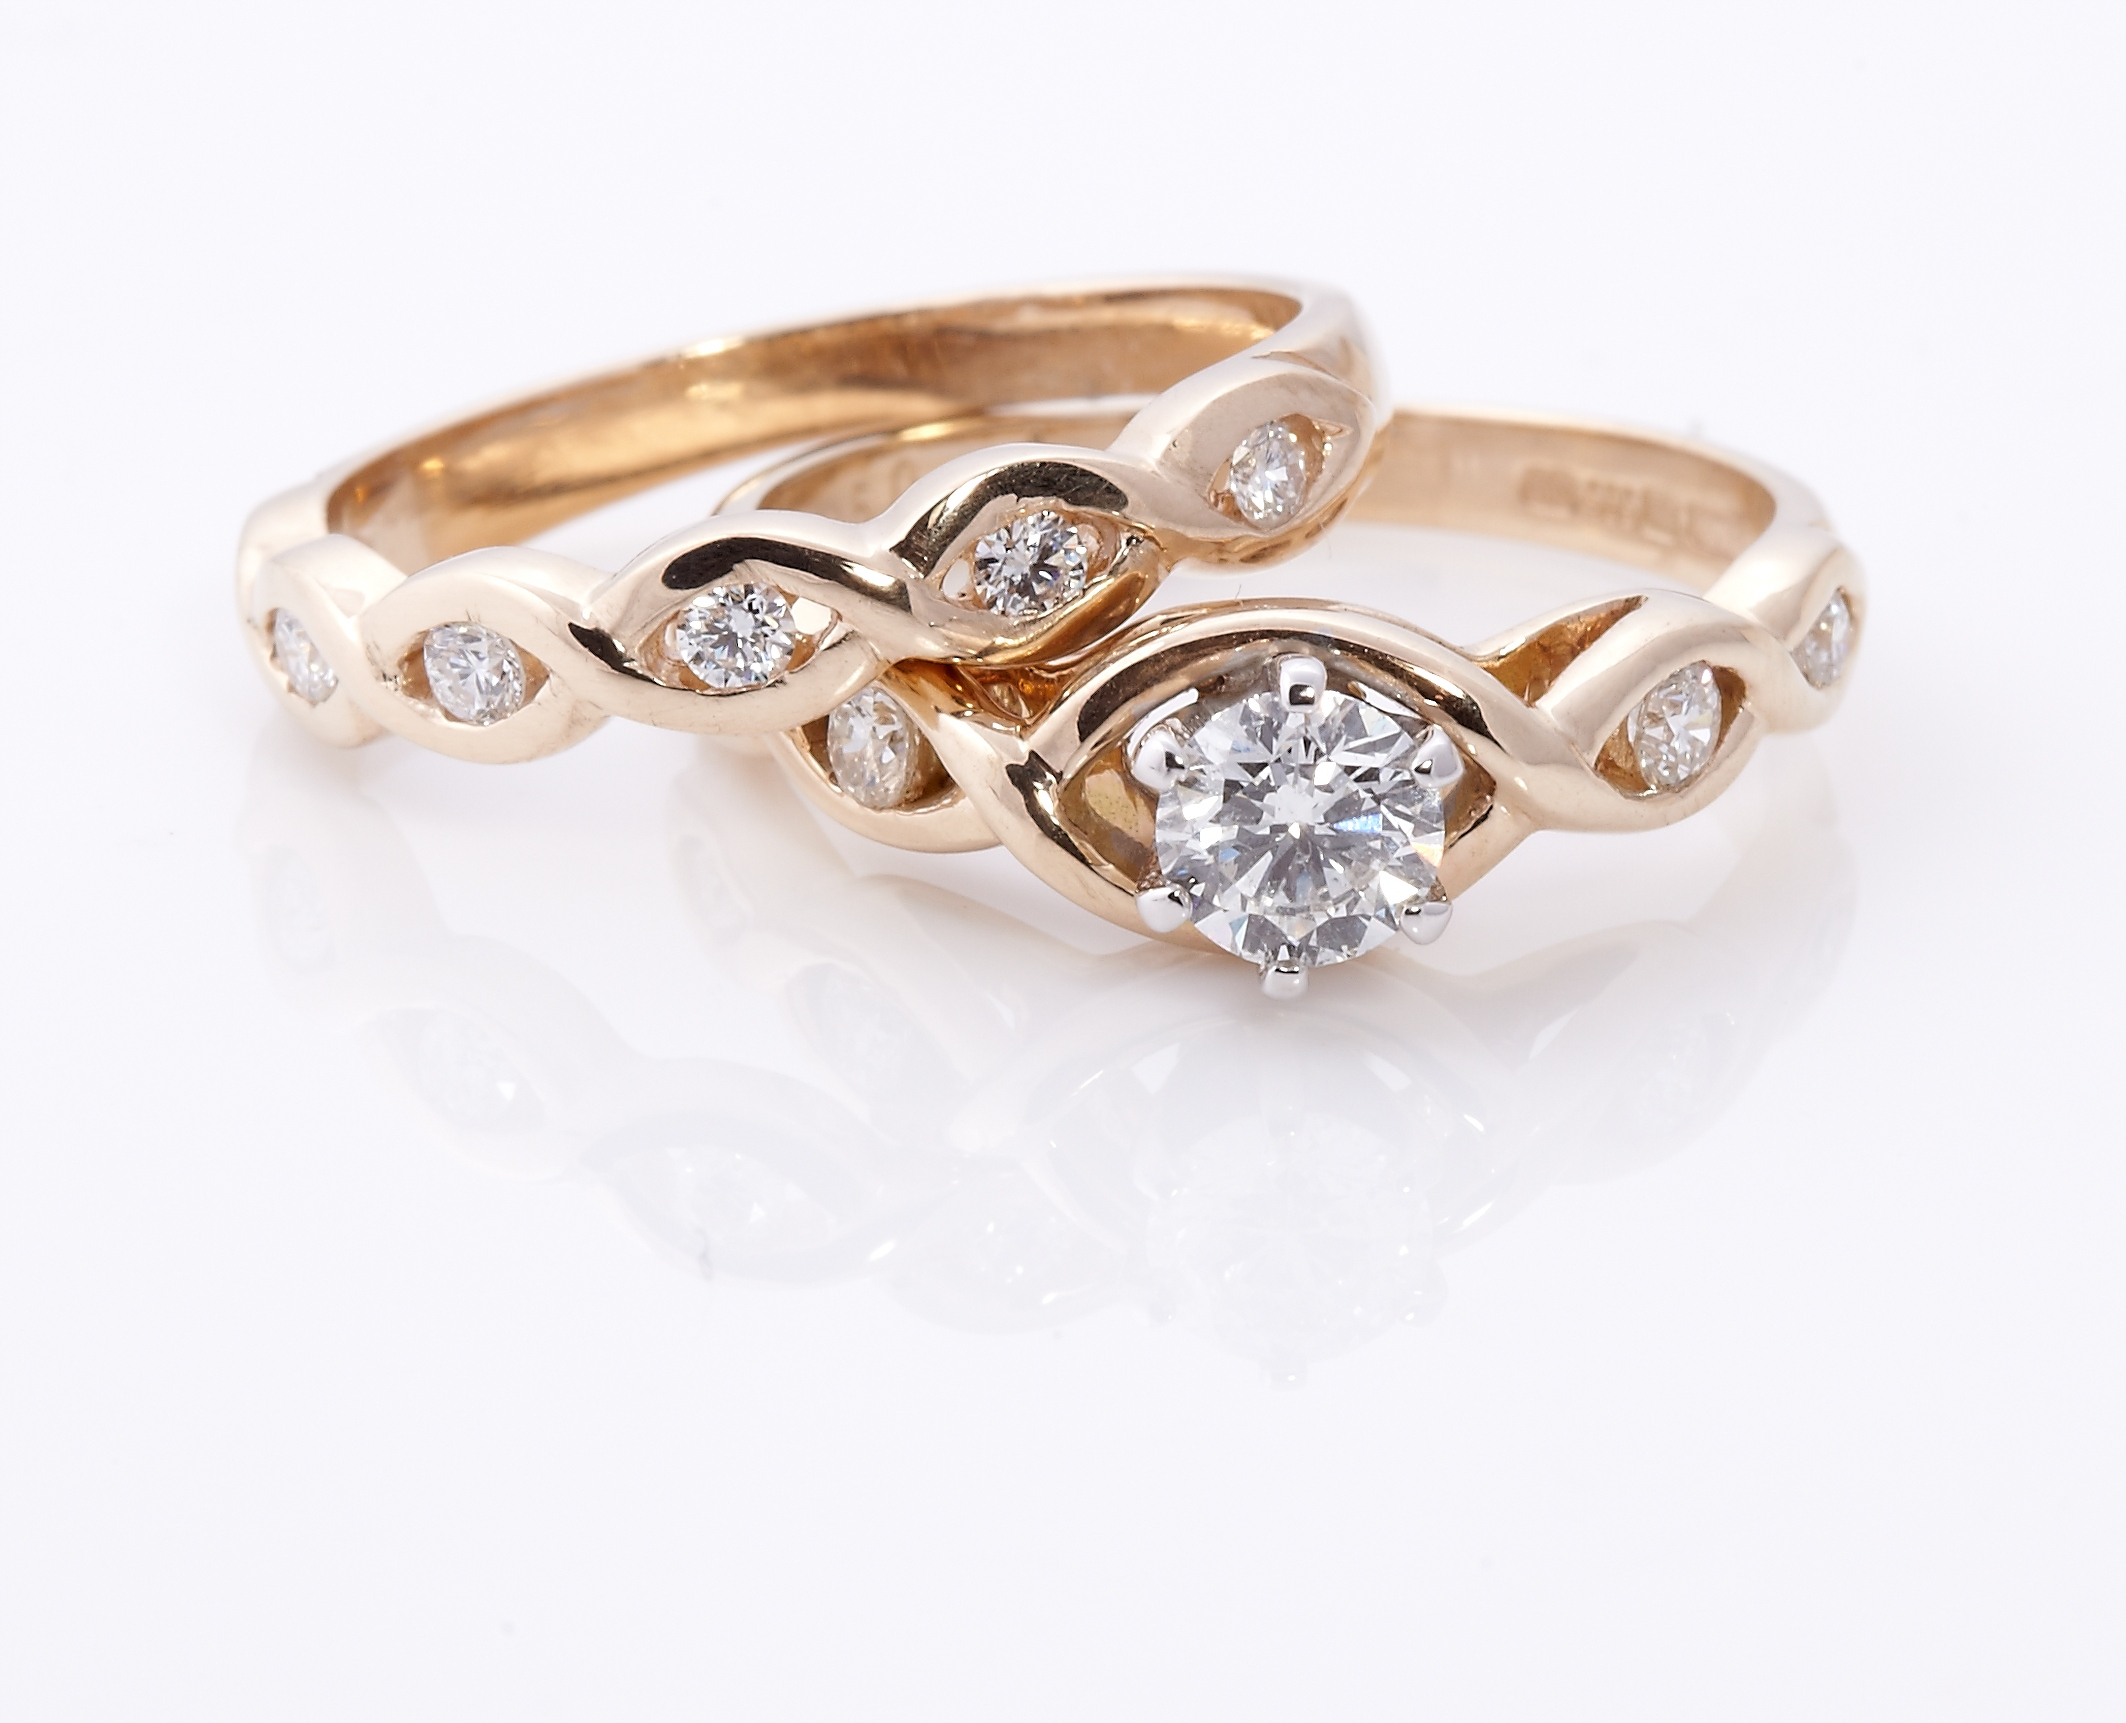 Online Irish Jewelry Store Plans Promotions Ahead Of